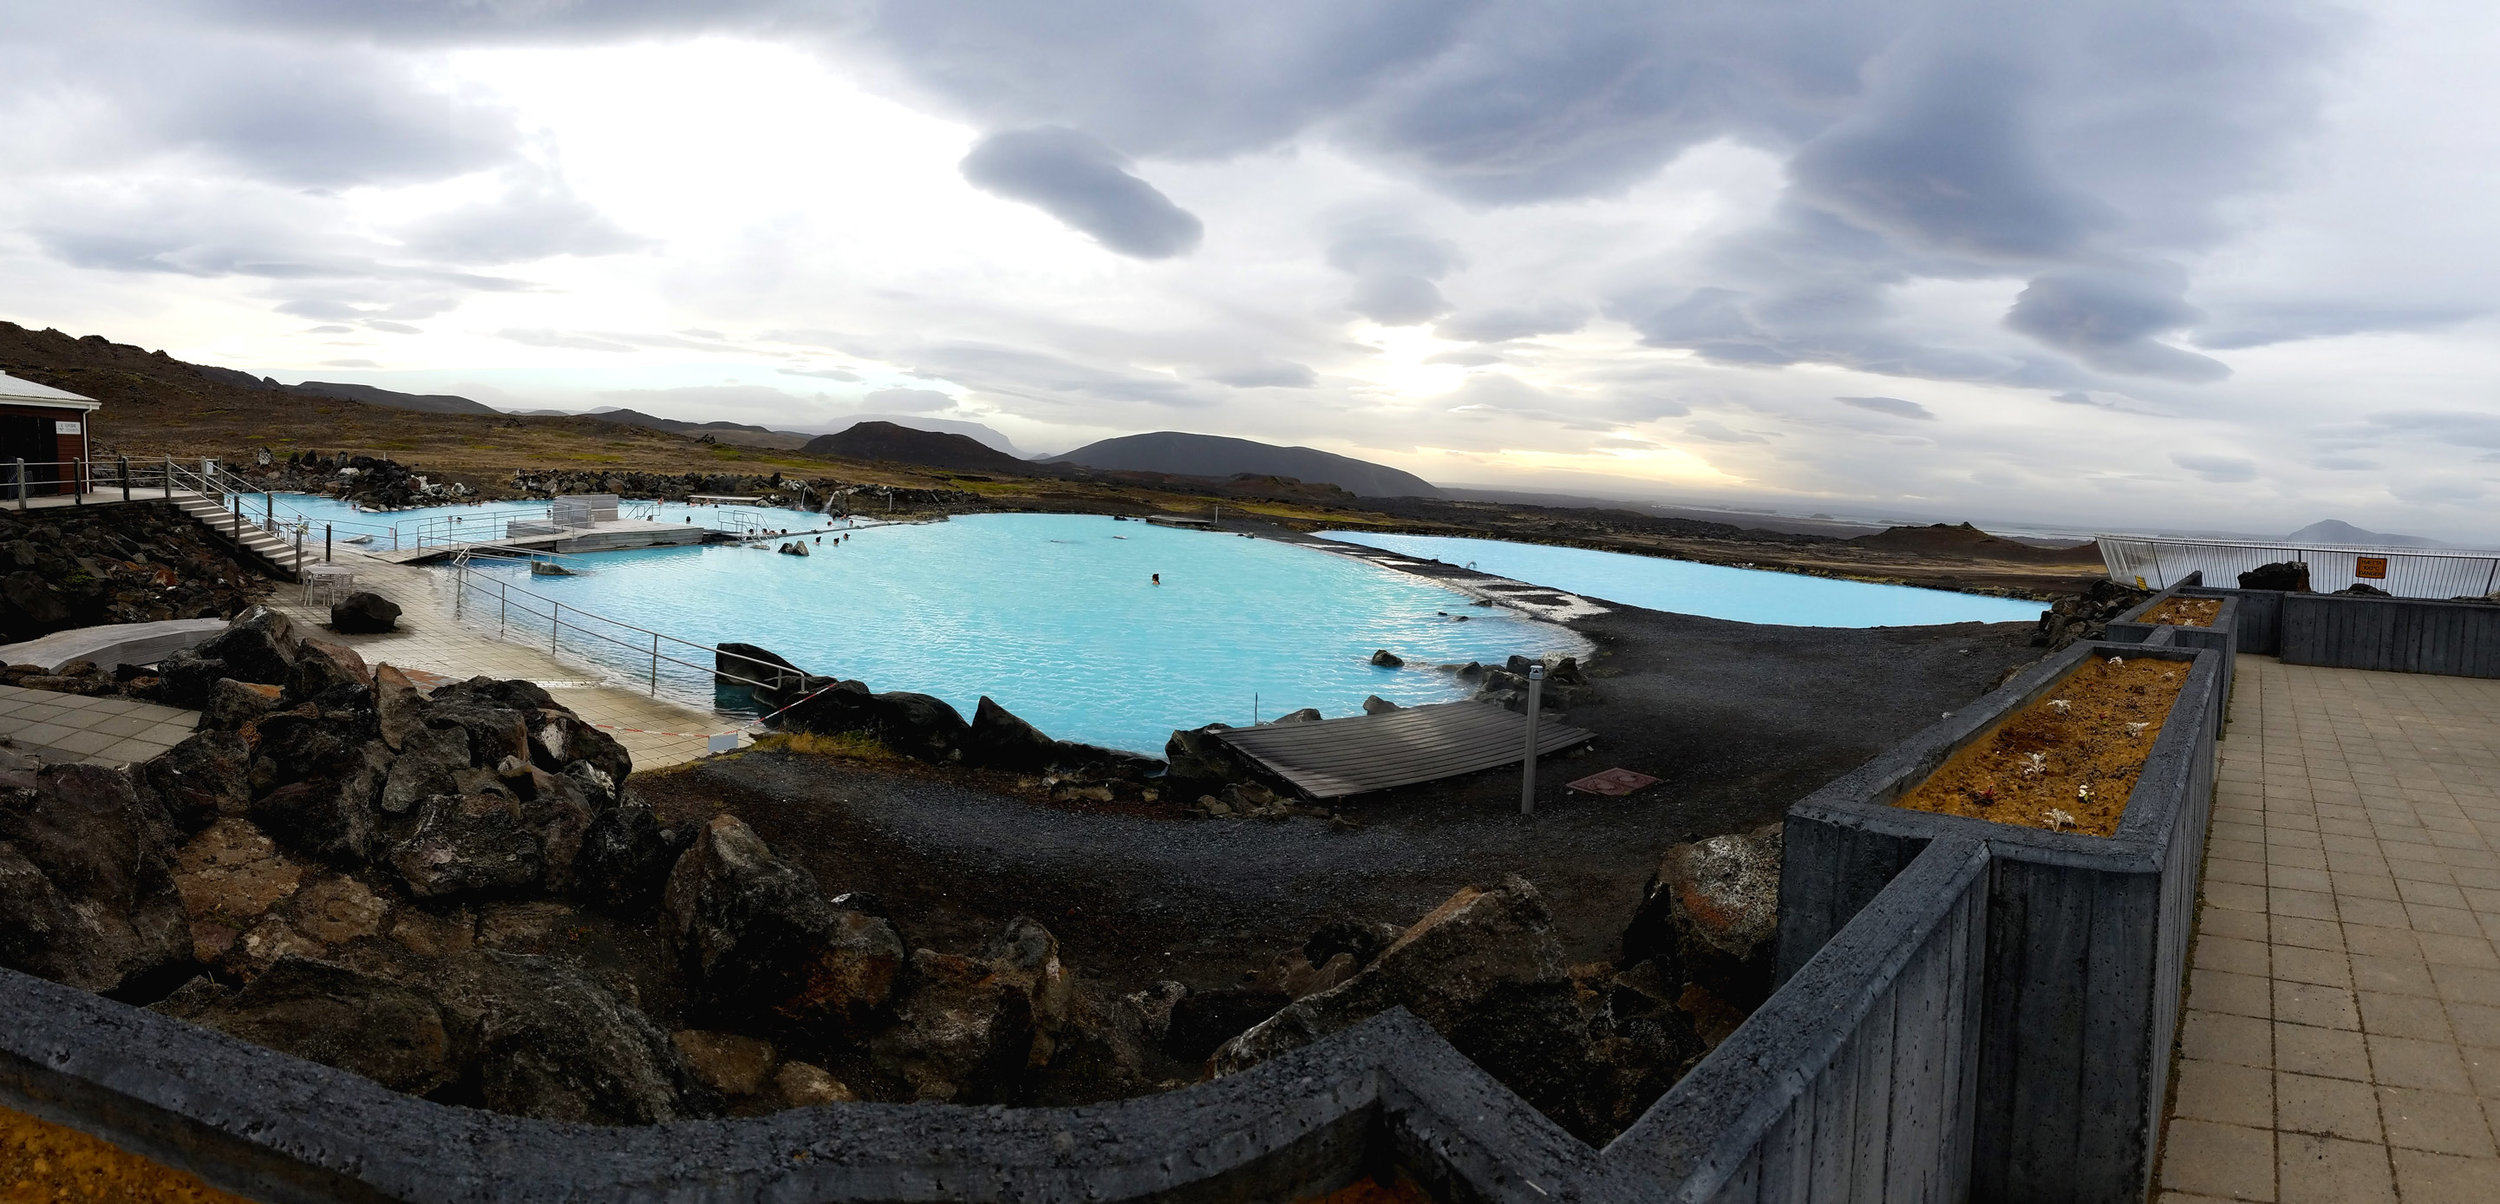 Myvatn-nature-bath-Top-view-Iceland.jpg